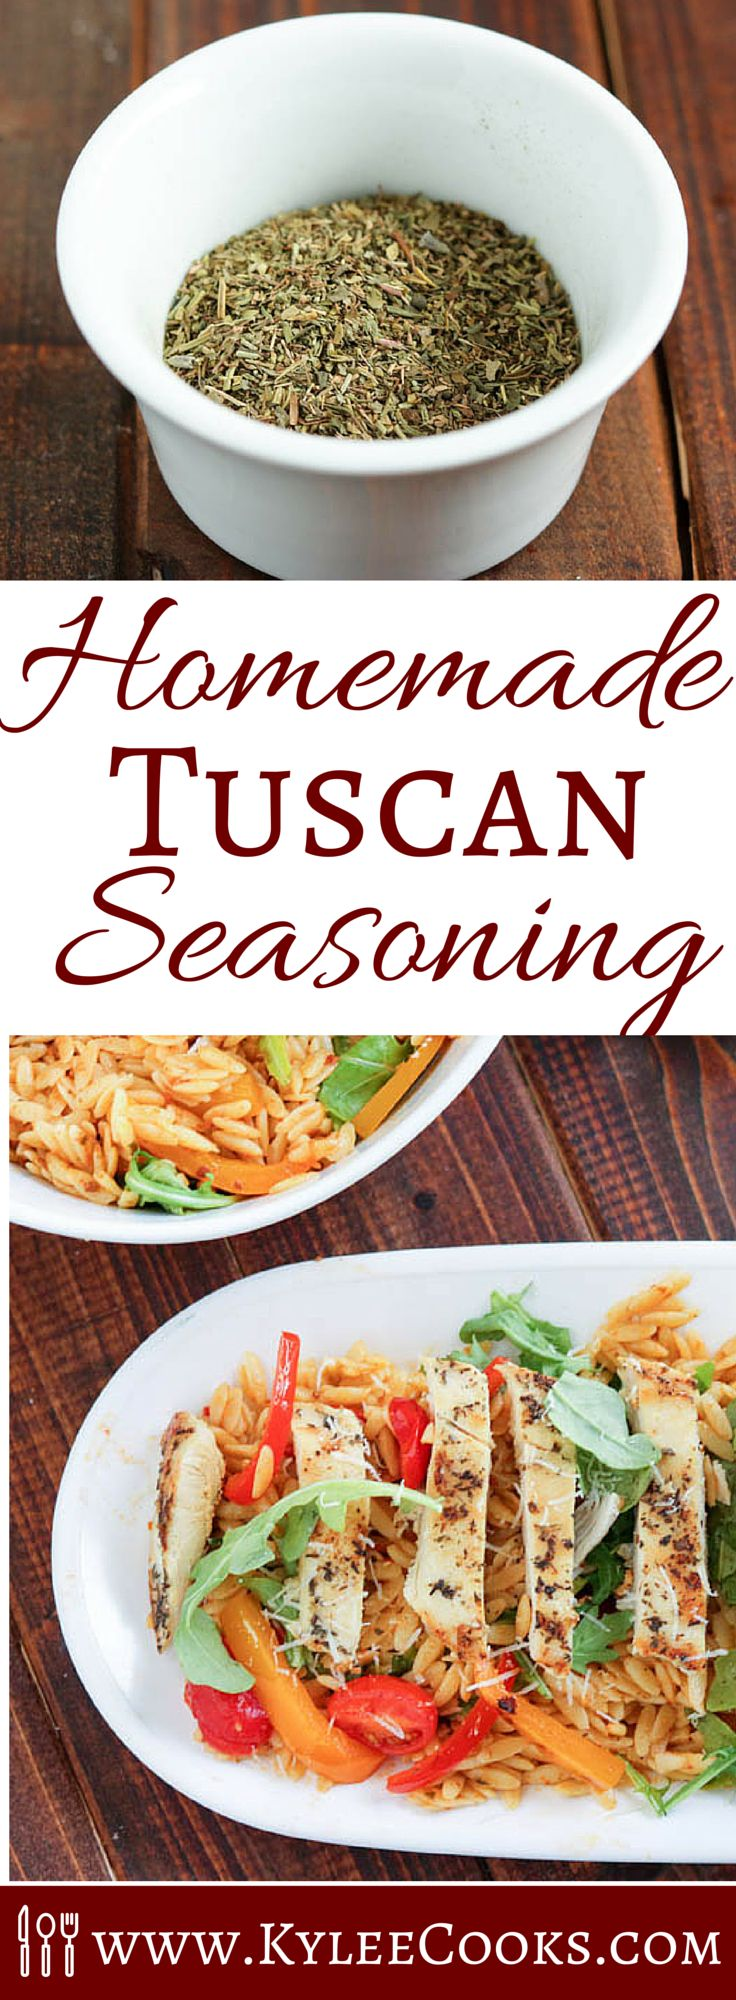 Have a recipe that calls for Tuscan Seasoning, and can't find it in the store, or don't know what it is? I got you covered. Make your own using this easy recipe.